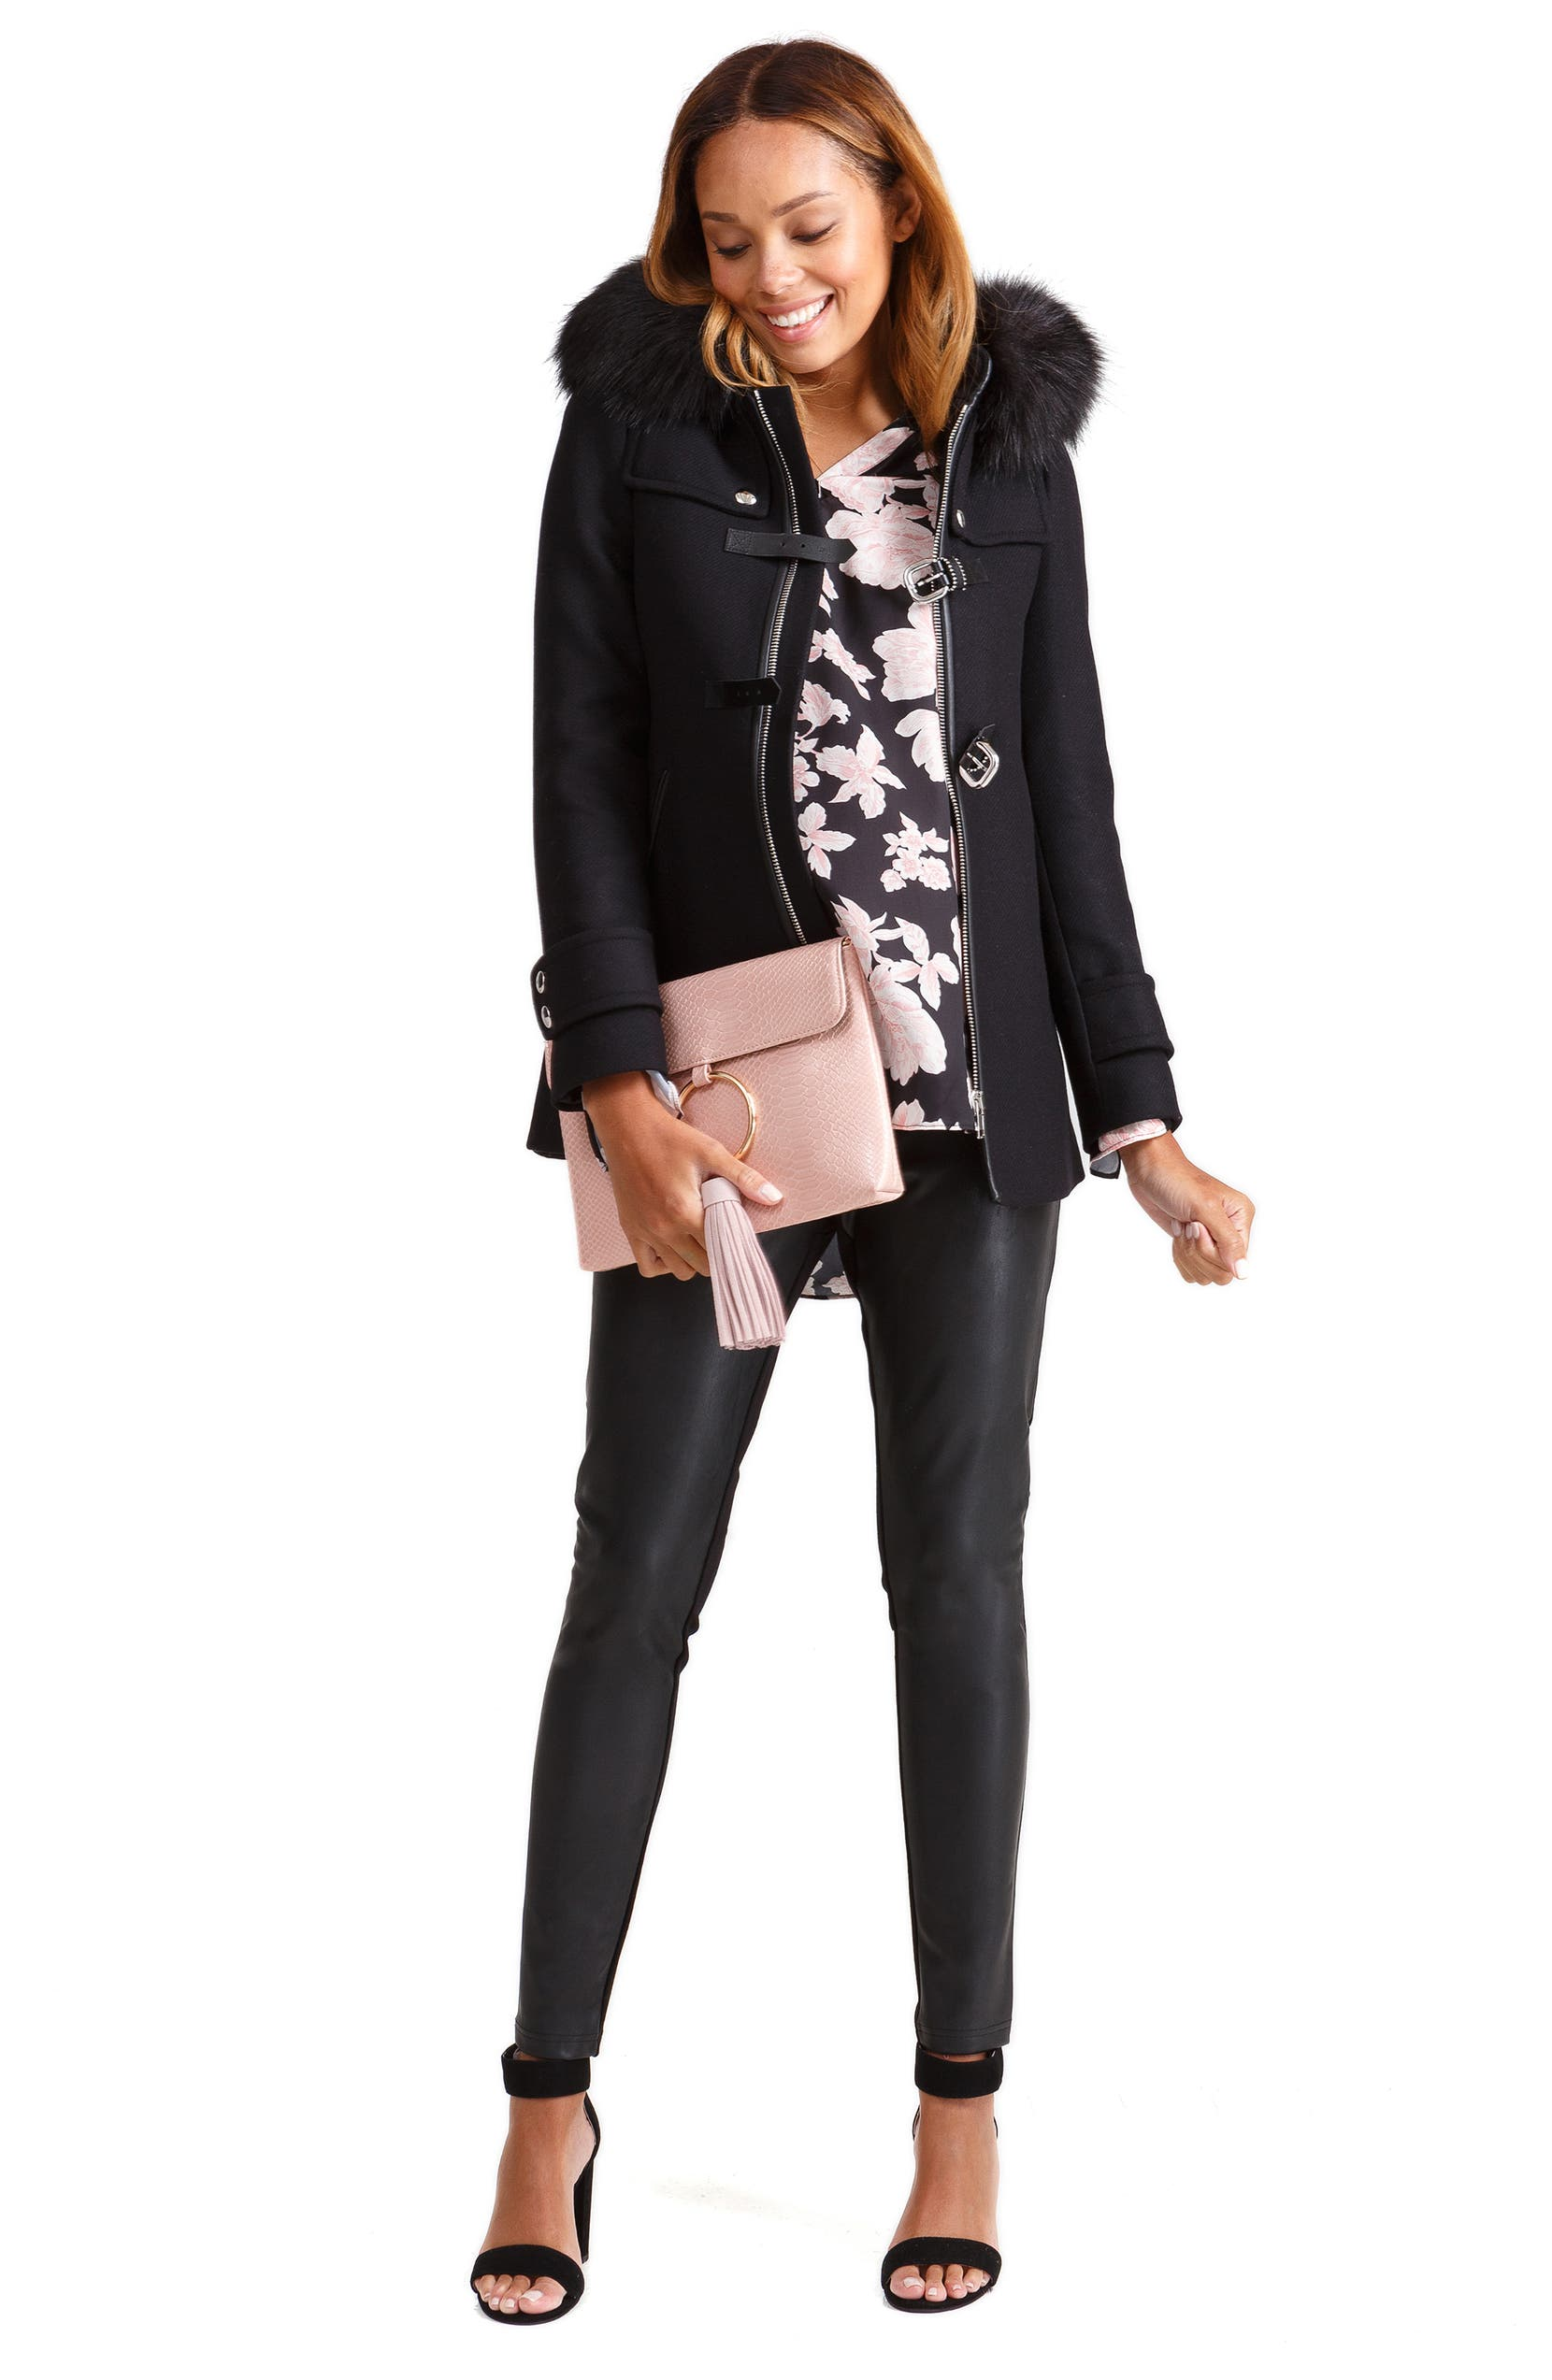 869c33db6f3a6 Ingrid & Isabel® Under Belly Faux Leather Maternity Leggings | Nordstrom